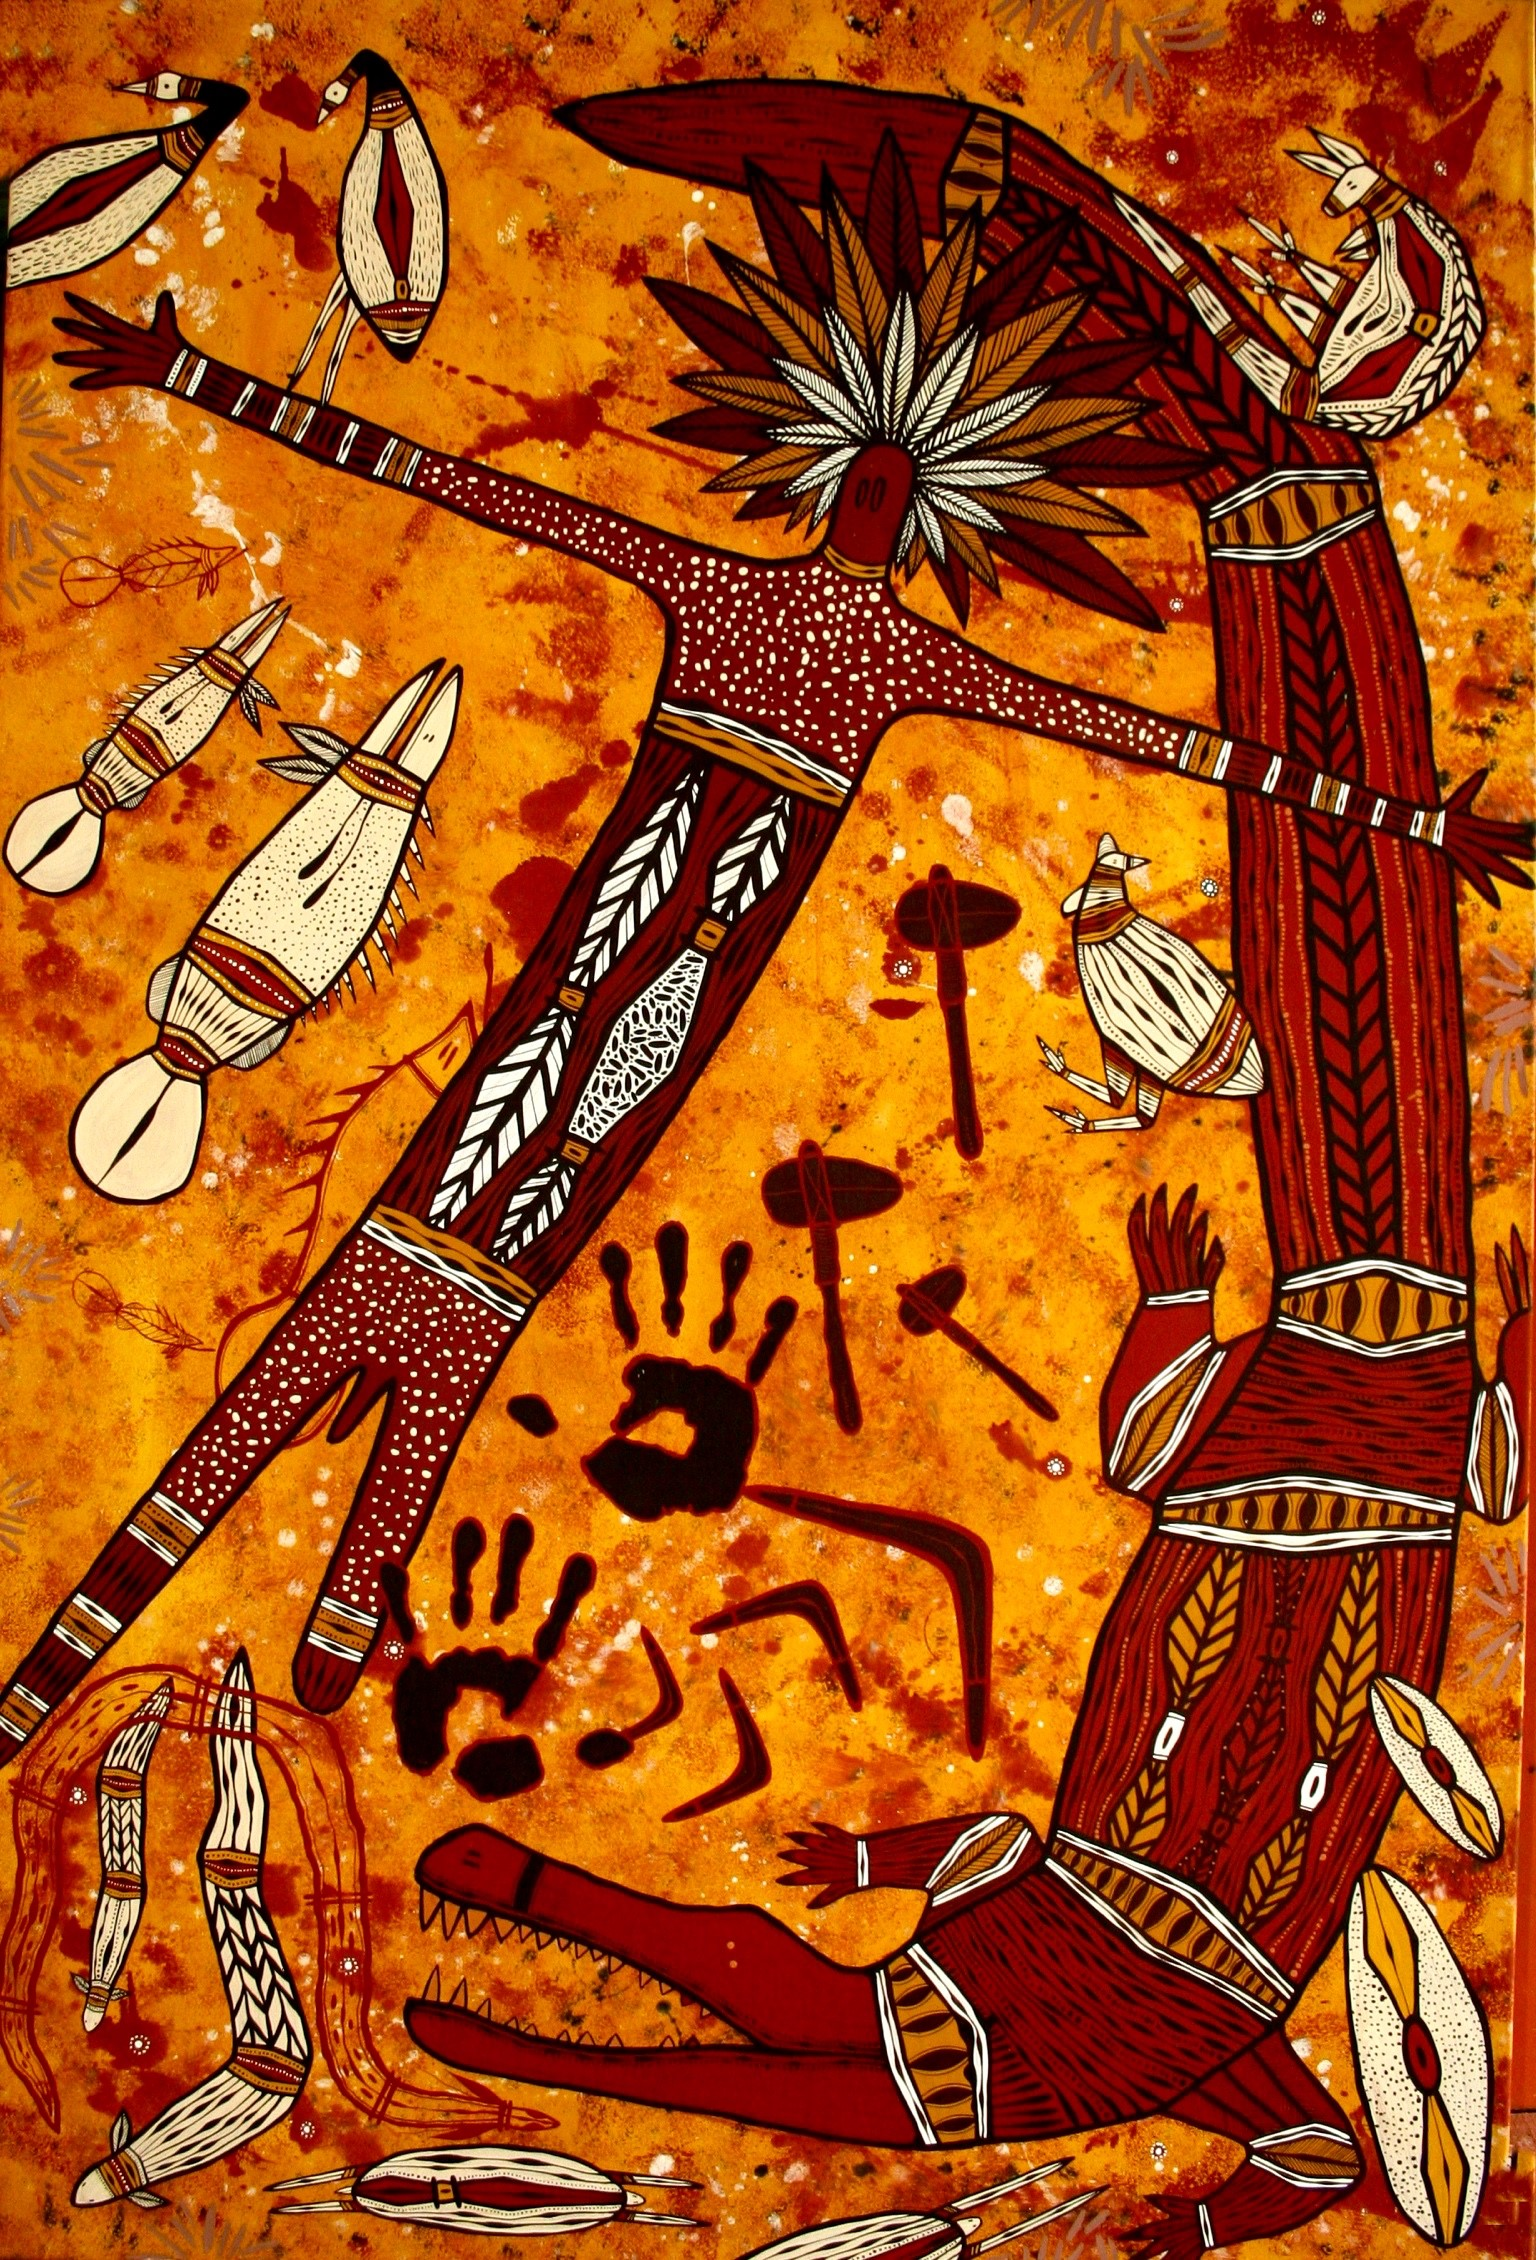 indigenous painting depicting a male figure with headdress and crocodile. Colours are red, black, orange and white. Around the male figure and crocodile the image depicts smaller Australian animals, axes, hand prints and boomerang.